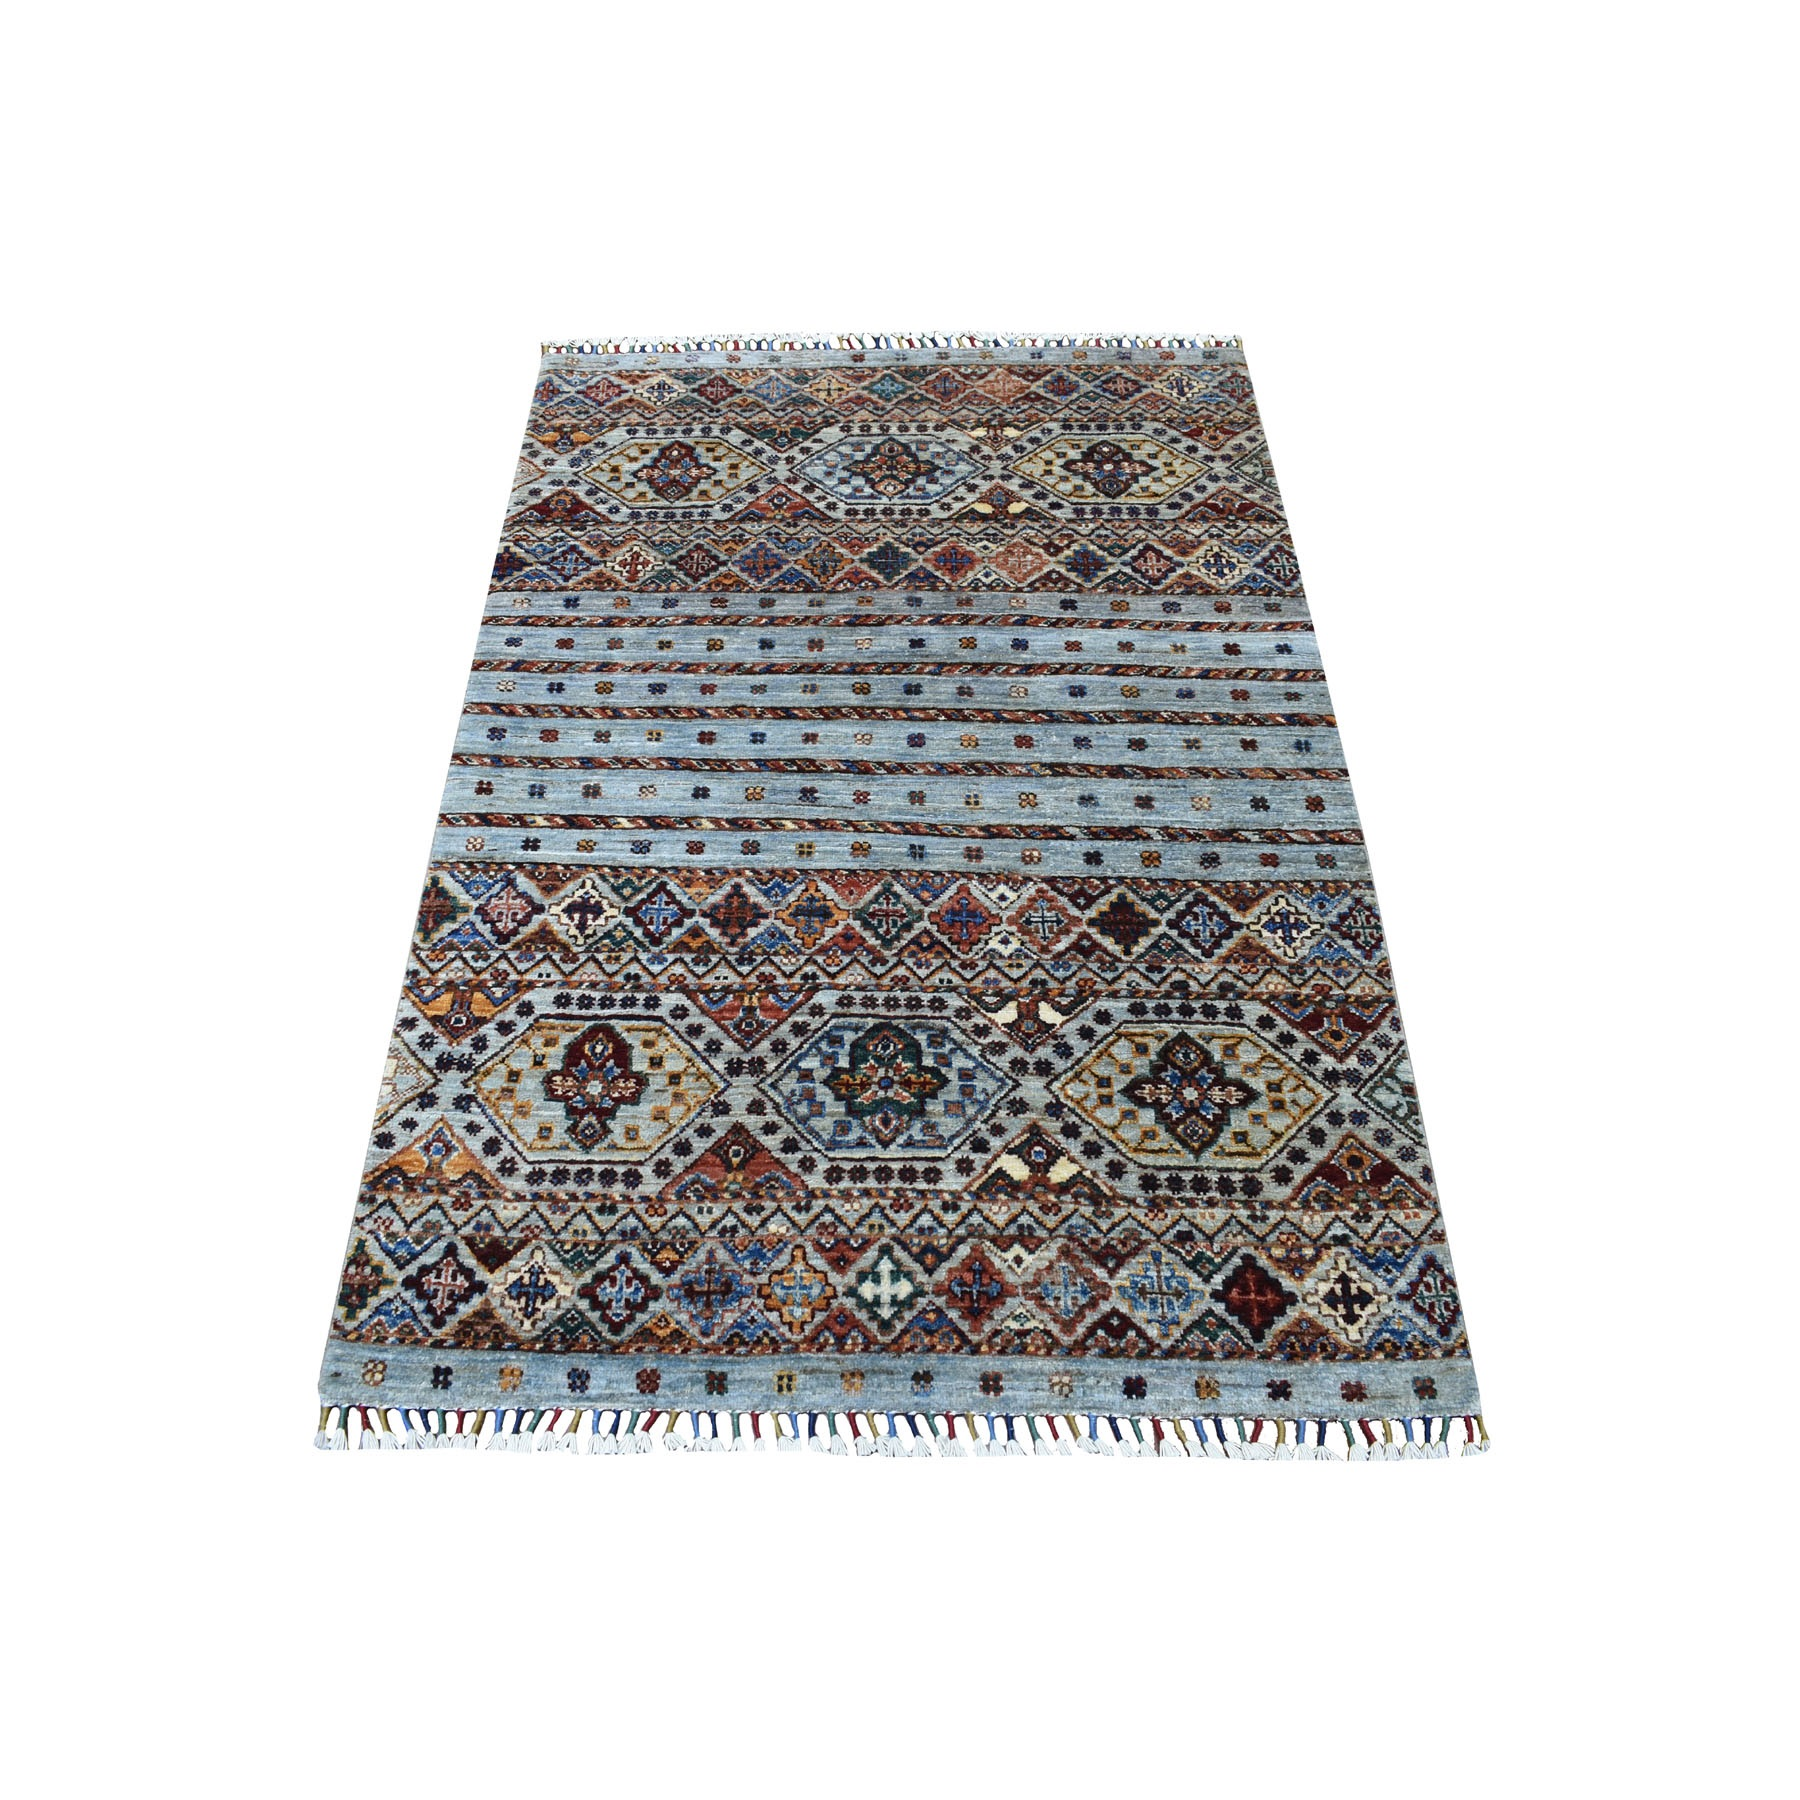 "3'4""x4'10"" Gray With Colorful Tassles Hand Knotted Super Kazak And Nomadic Khorjin Design Natural Wool Oriental Rug"